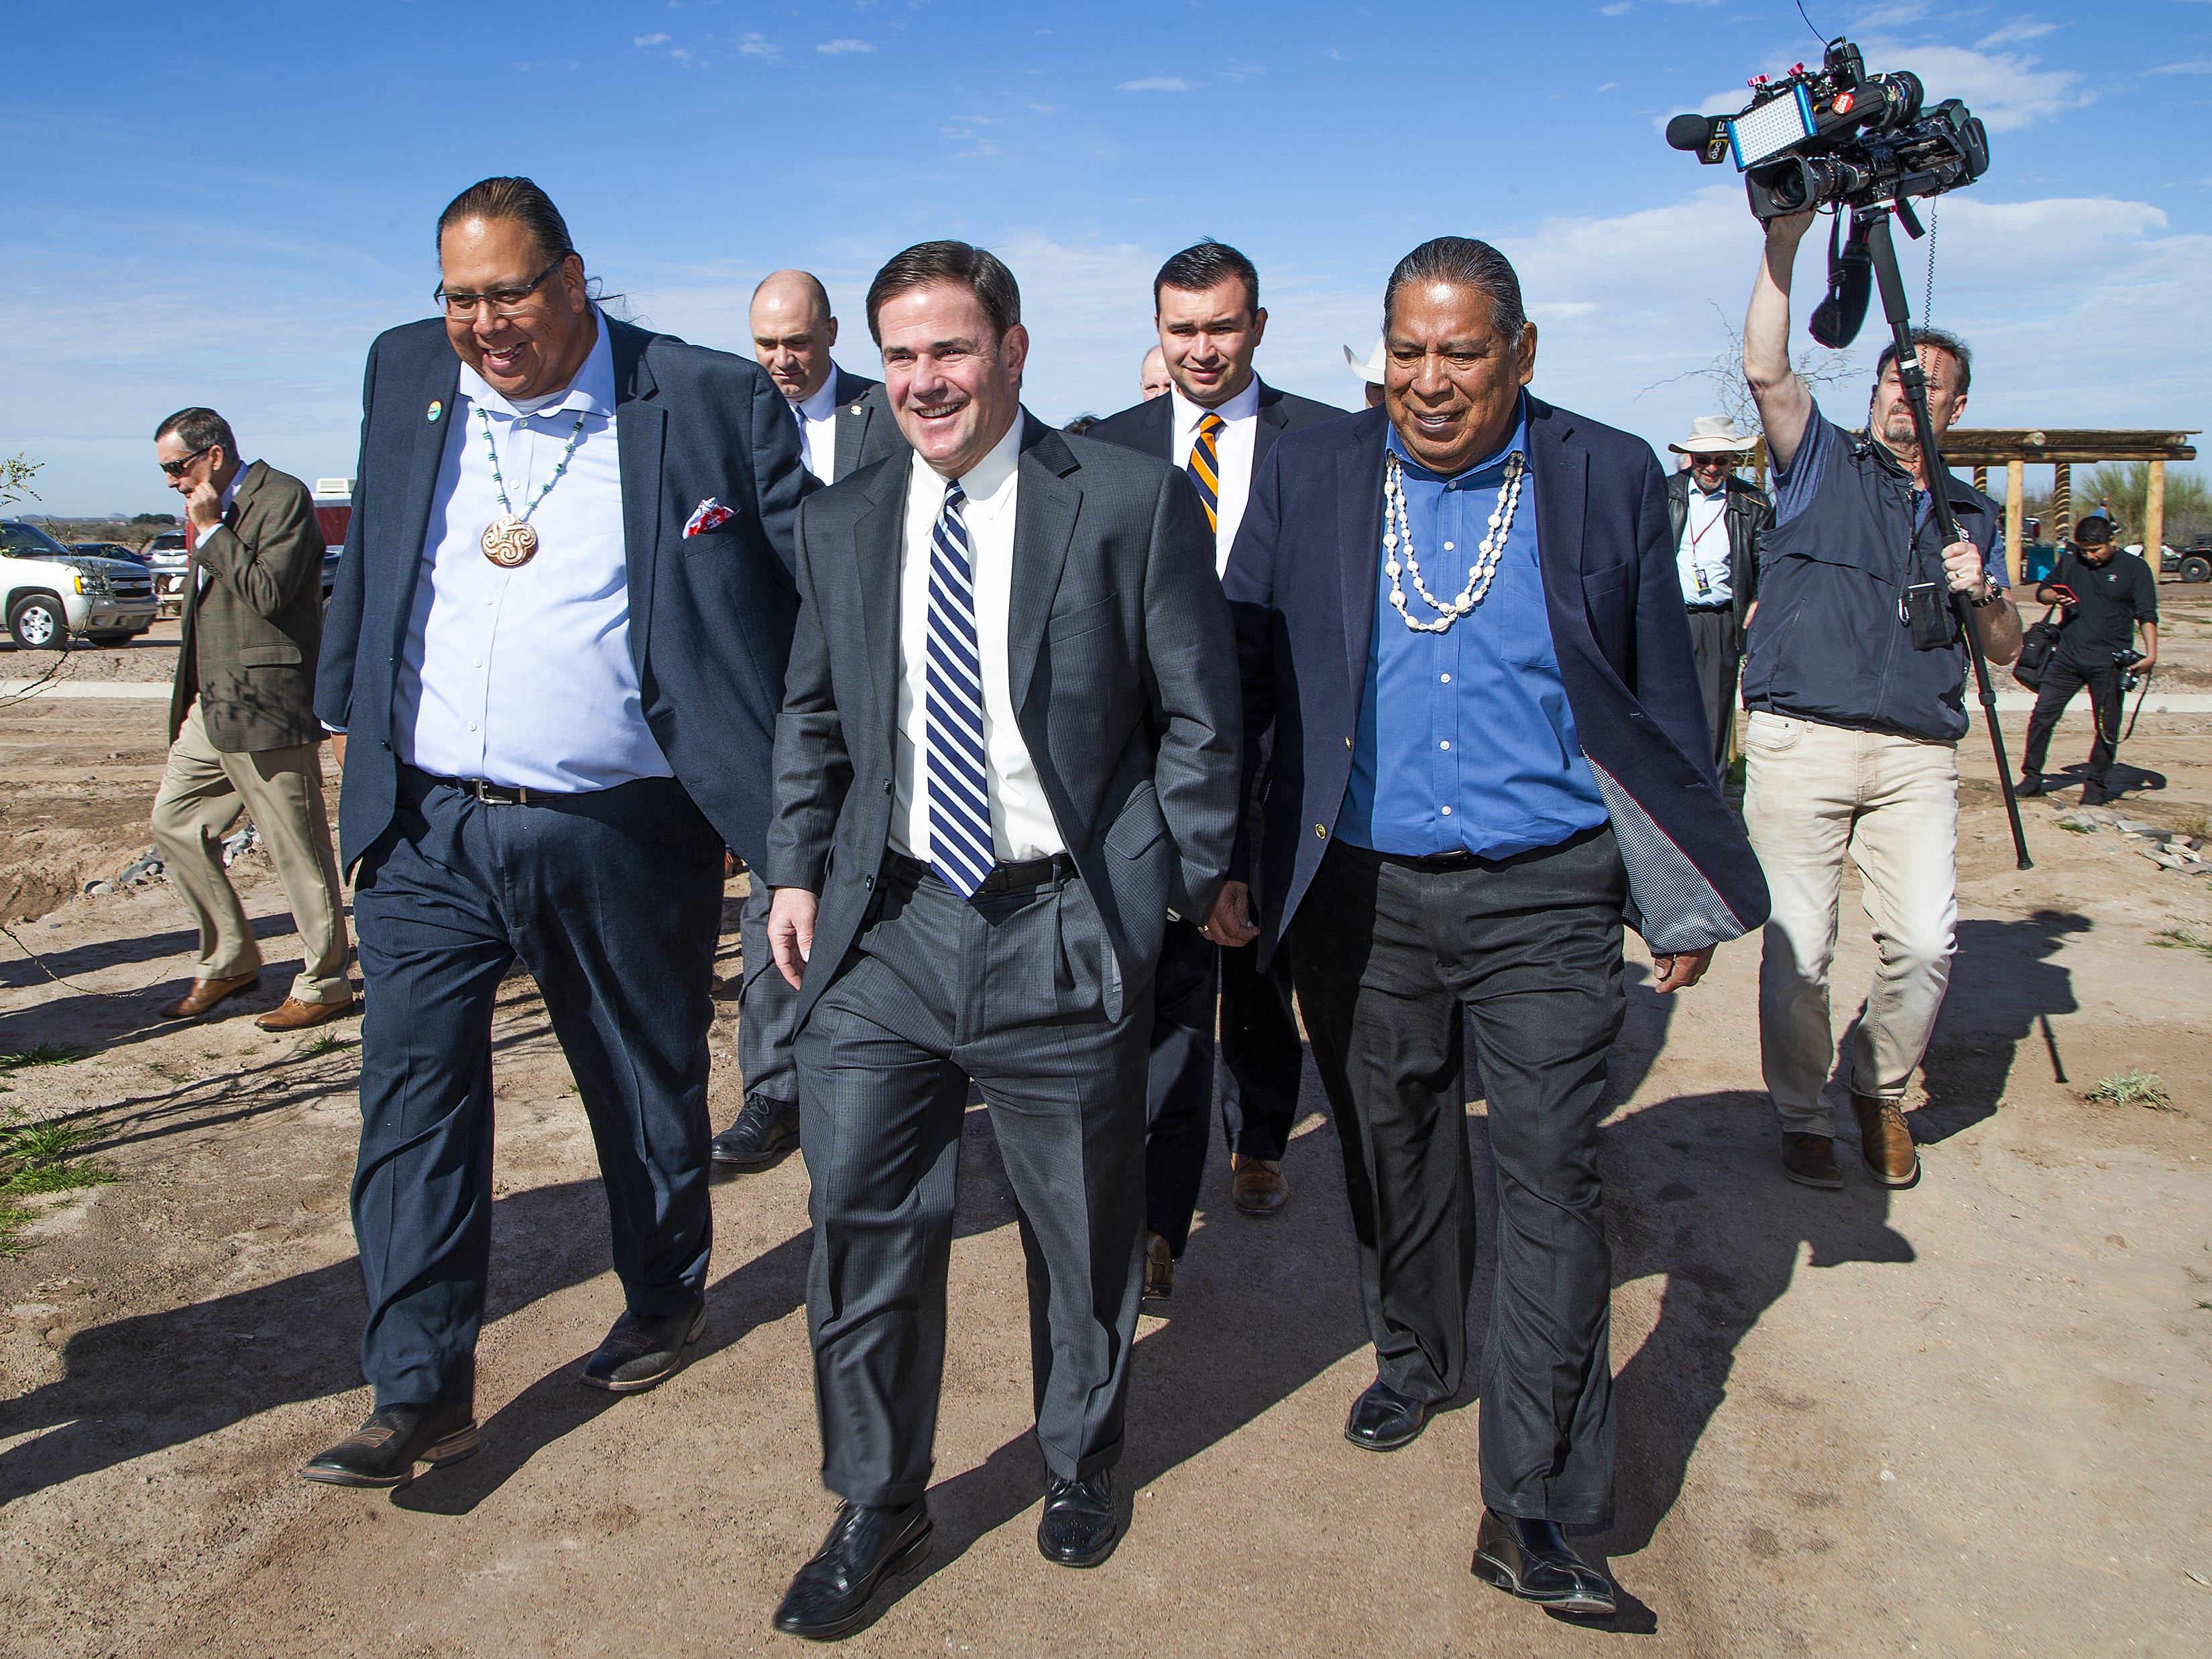 (From left to right) Gila River Indian Community Gov. Stephen Lewis, Arizona Gov. Doug Ducey, and Gila River Indian Community Lt. Gov. Robert Stone walk to the Mar 5 Interpretive Trail grand-opening ceremony near Sacaton on March 1, 2019.